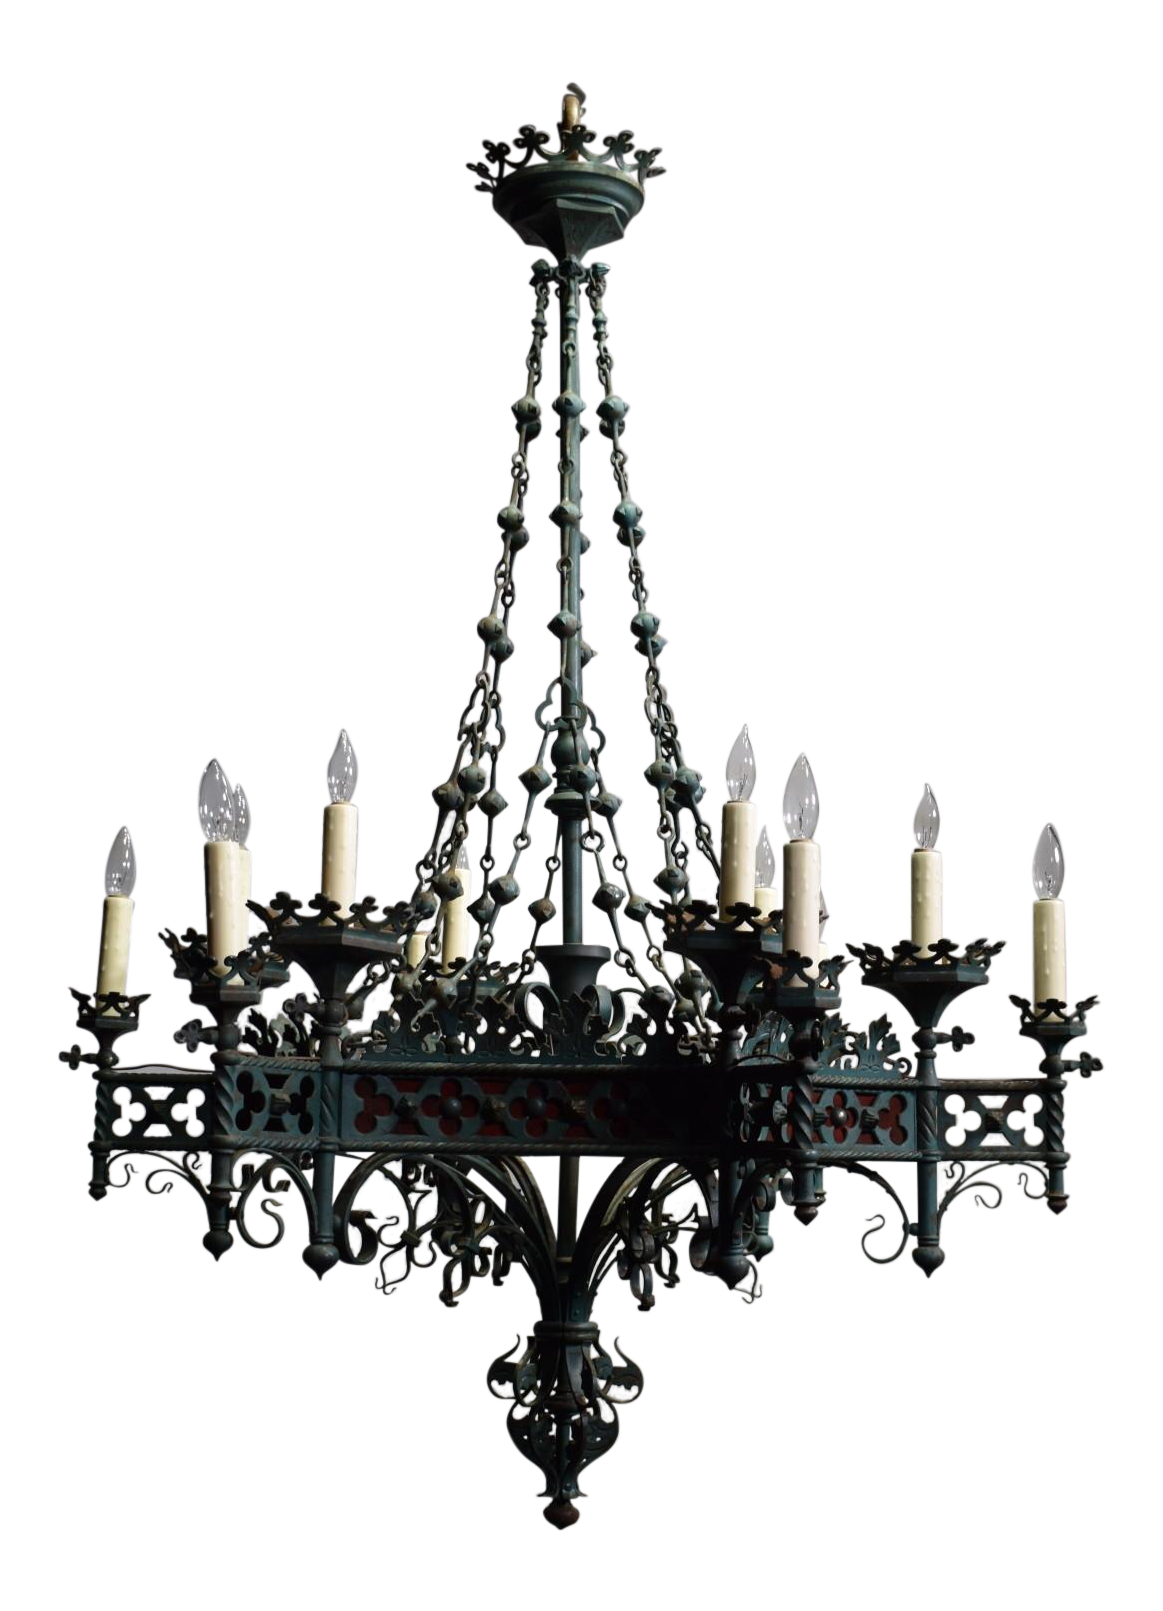 Halloween chandelier clipart svg black and white stock Gothic Chandelier. Hanging Gothic Chandelier Exclusively At Spirit ... svg black and white stock